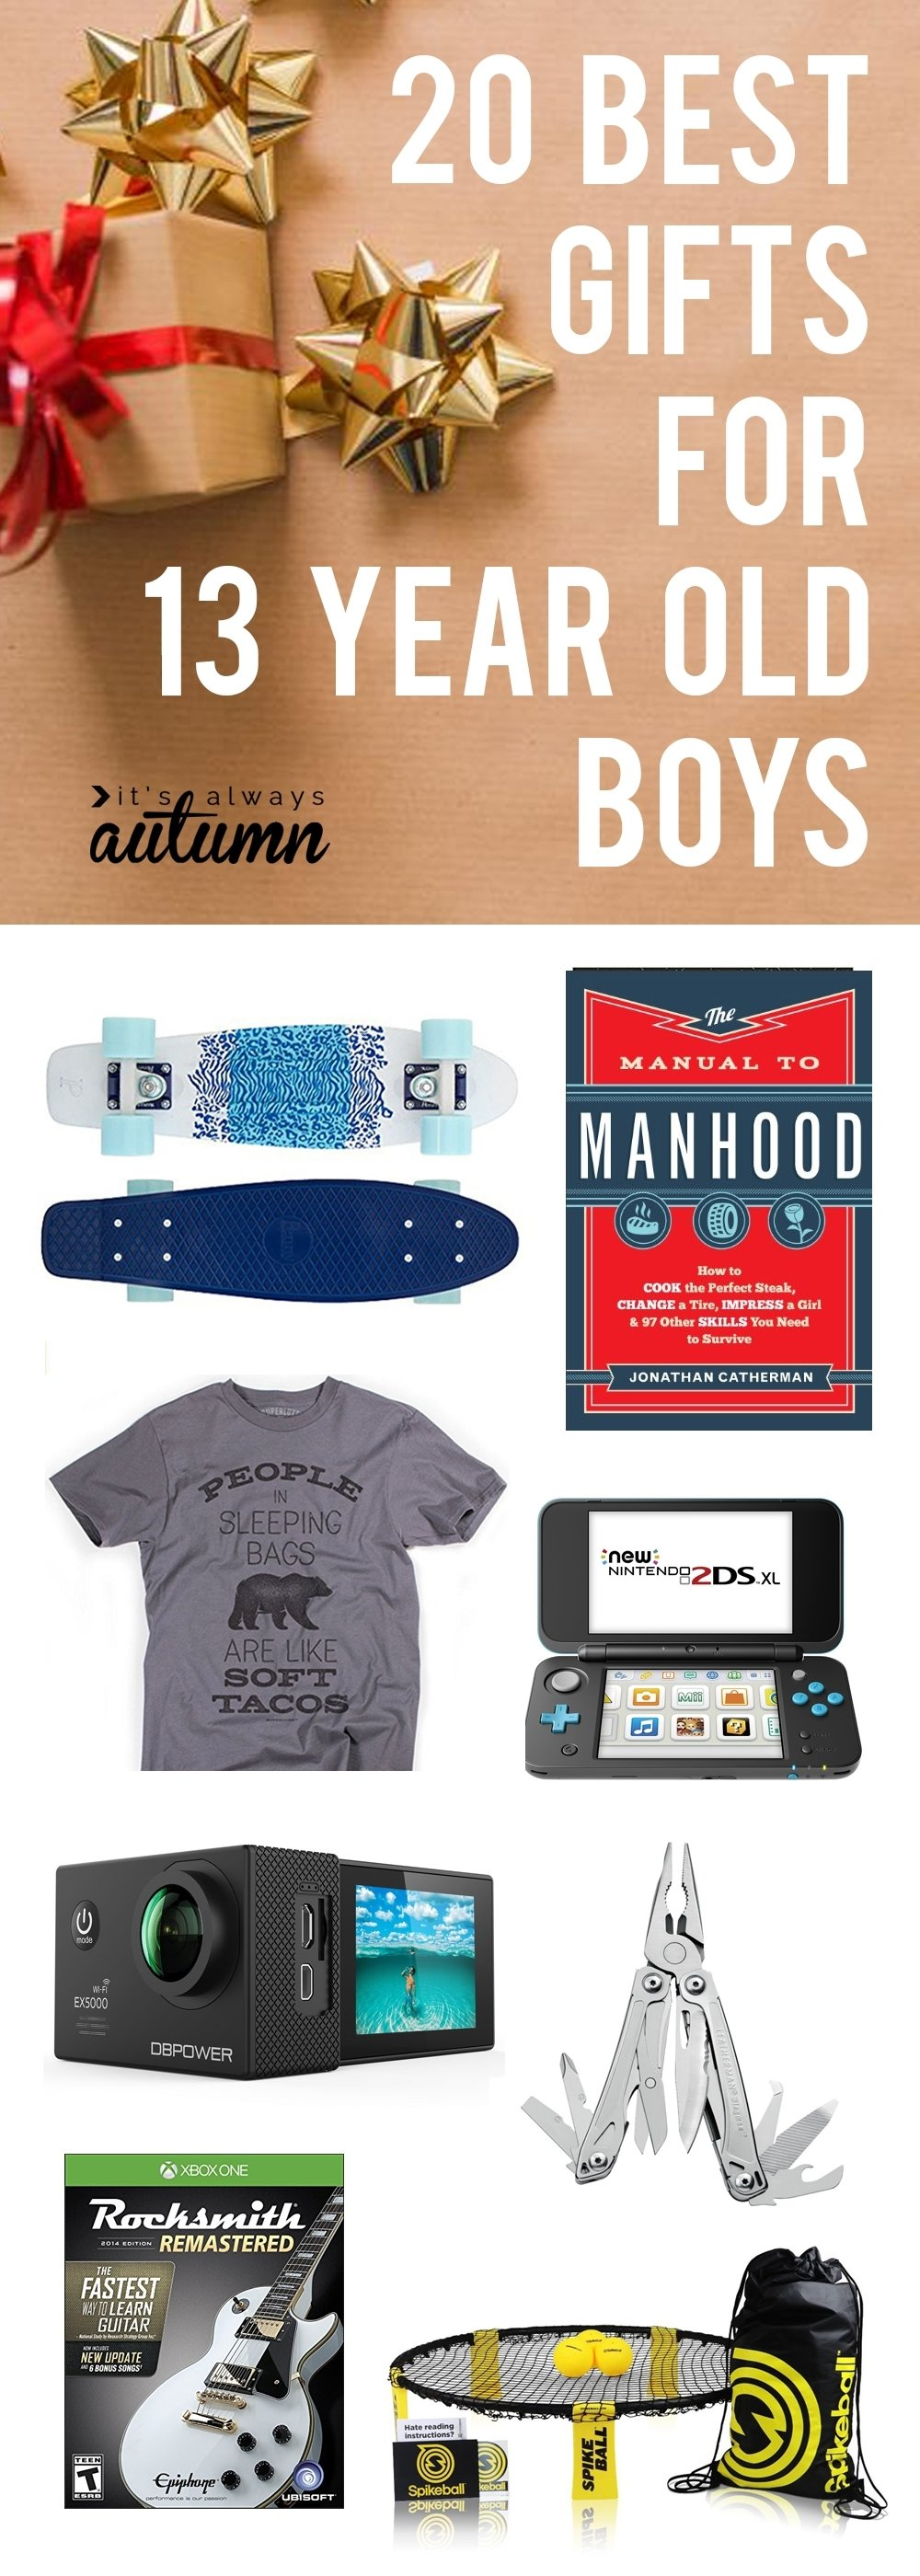 10 Famous Christmas Ideas For 13 Year Old Boys best christmas gifts for 13 year old boys its always autumn 13 2020